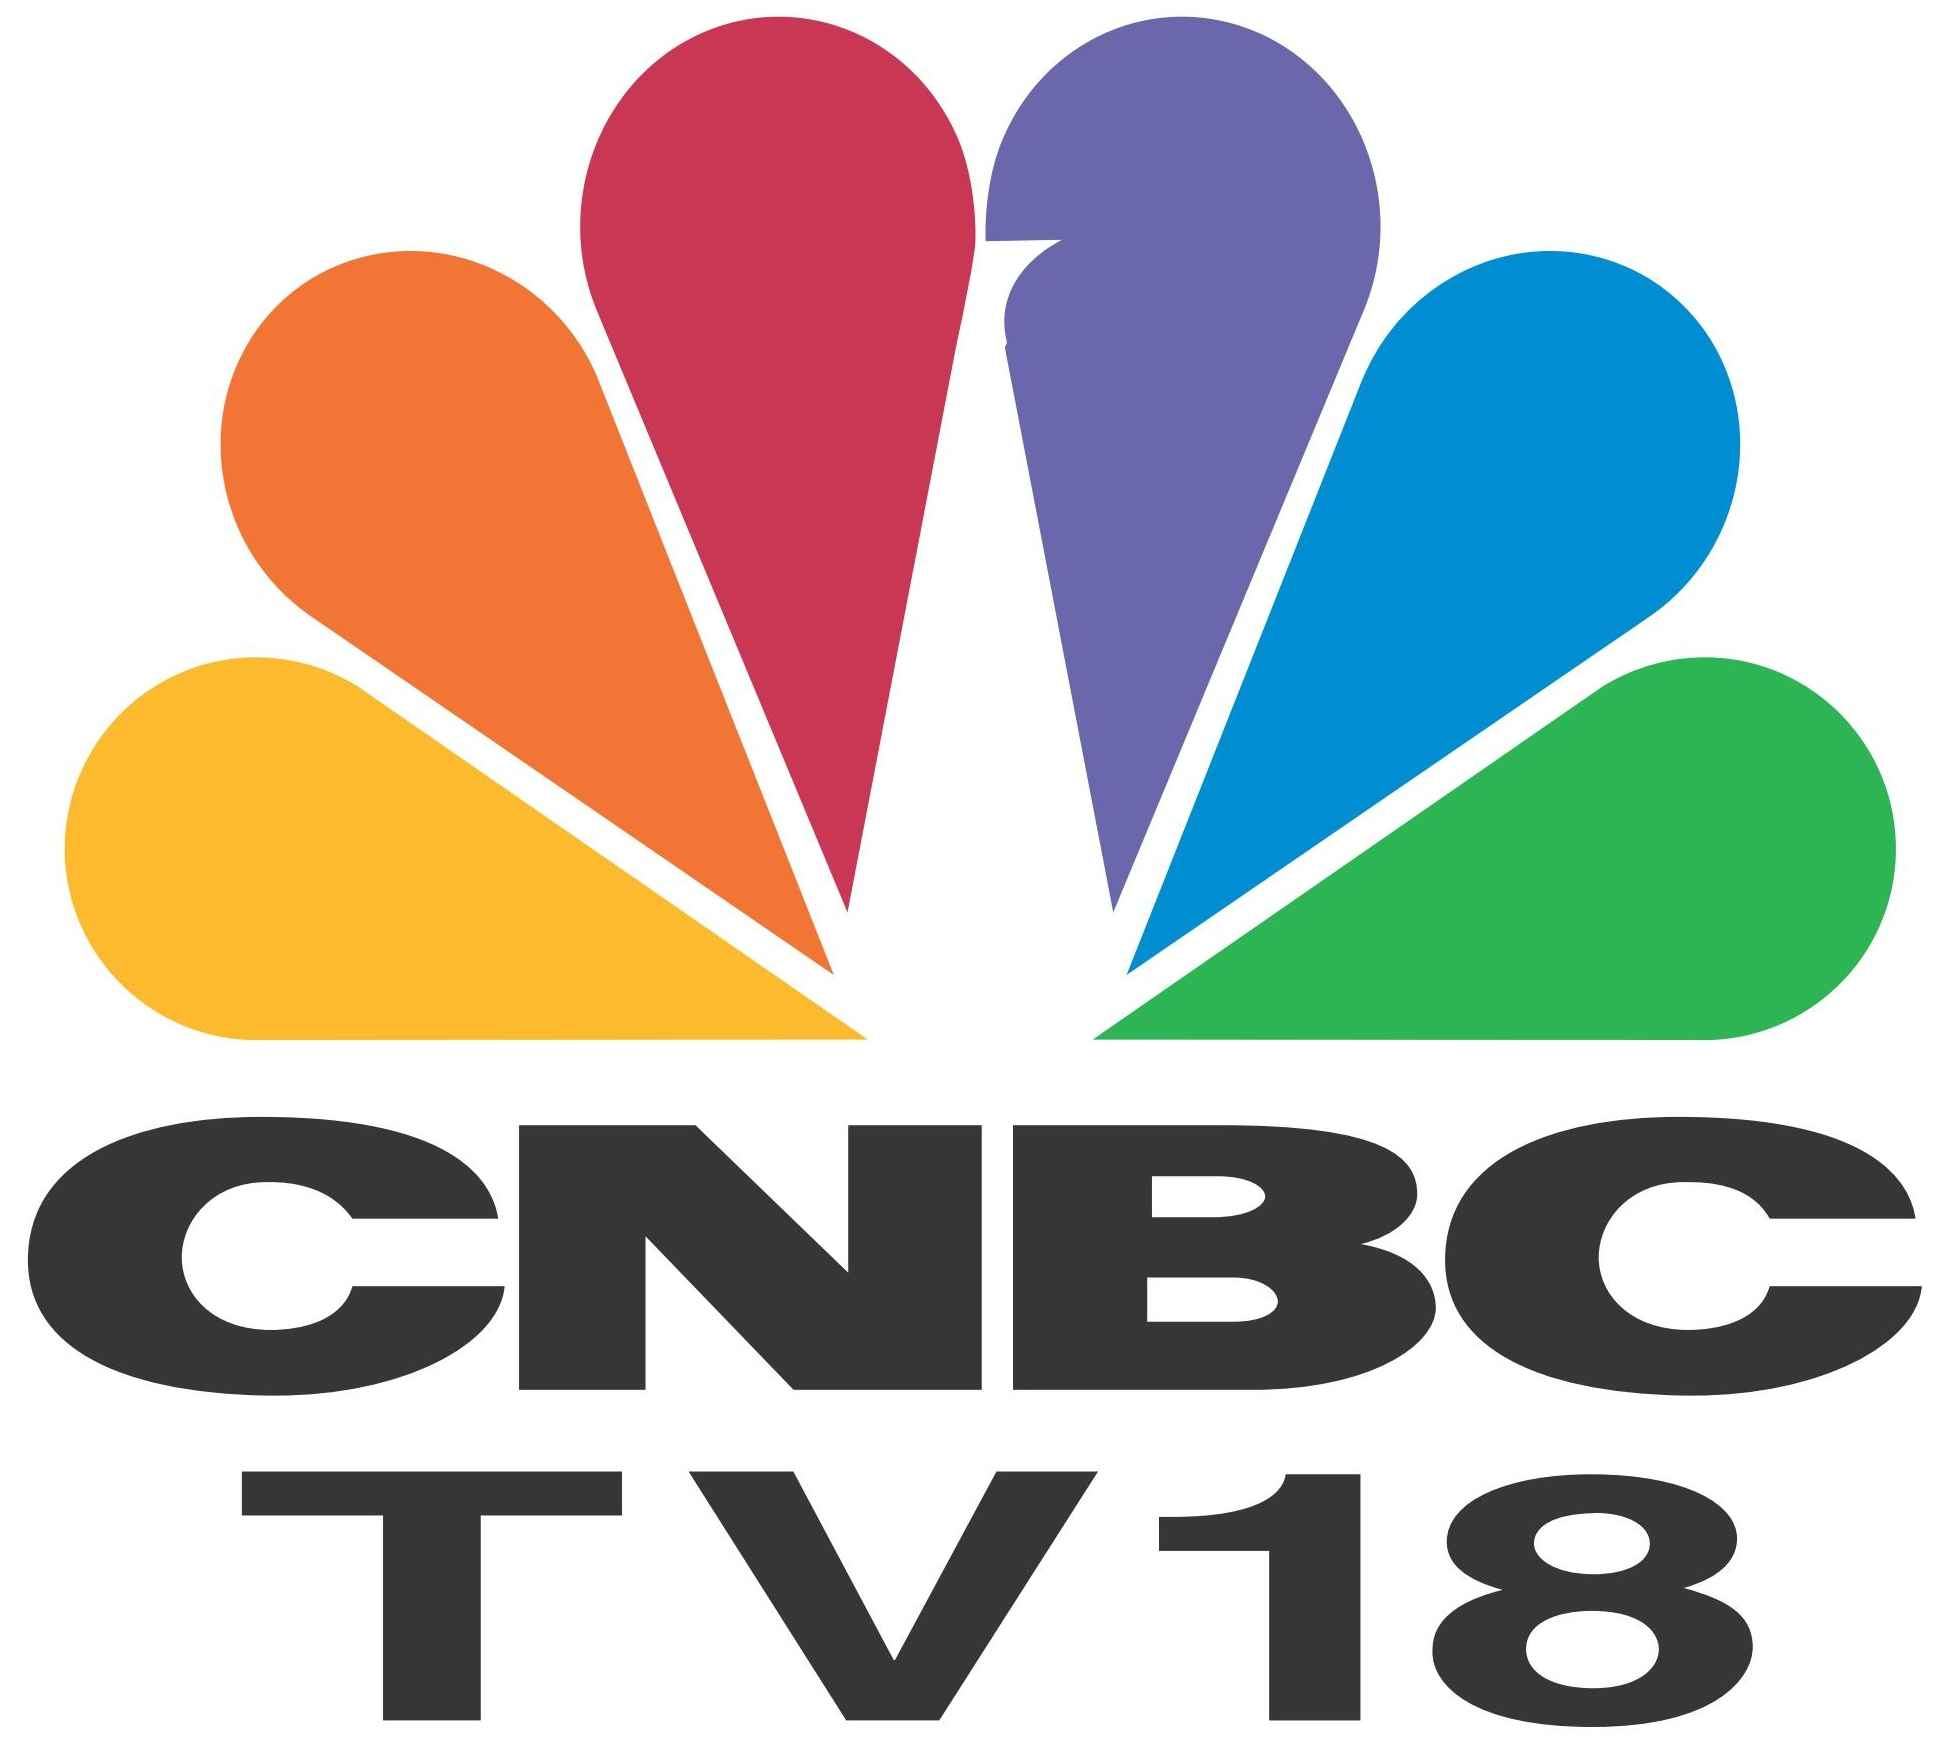 CNBC-TV18 Logo [EPS File] Vector EPS Free Download, Logo, Icons, Brand Emblems